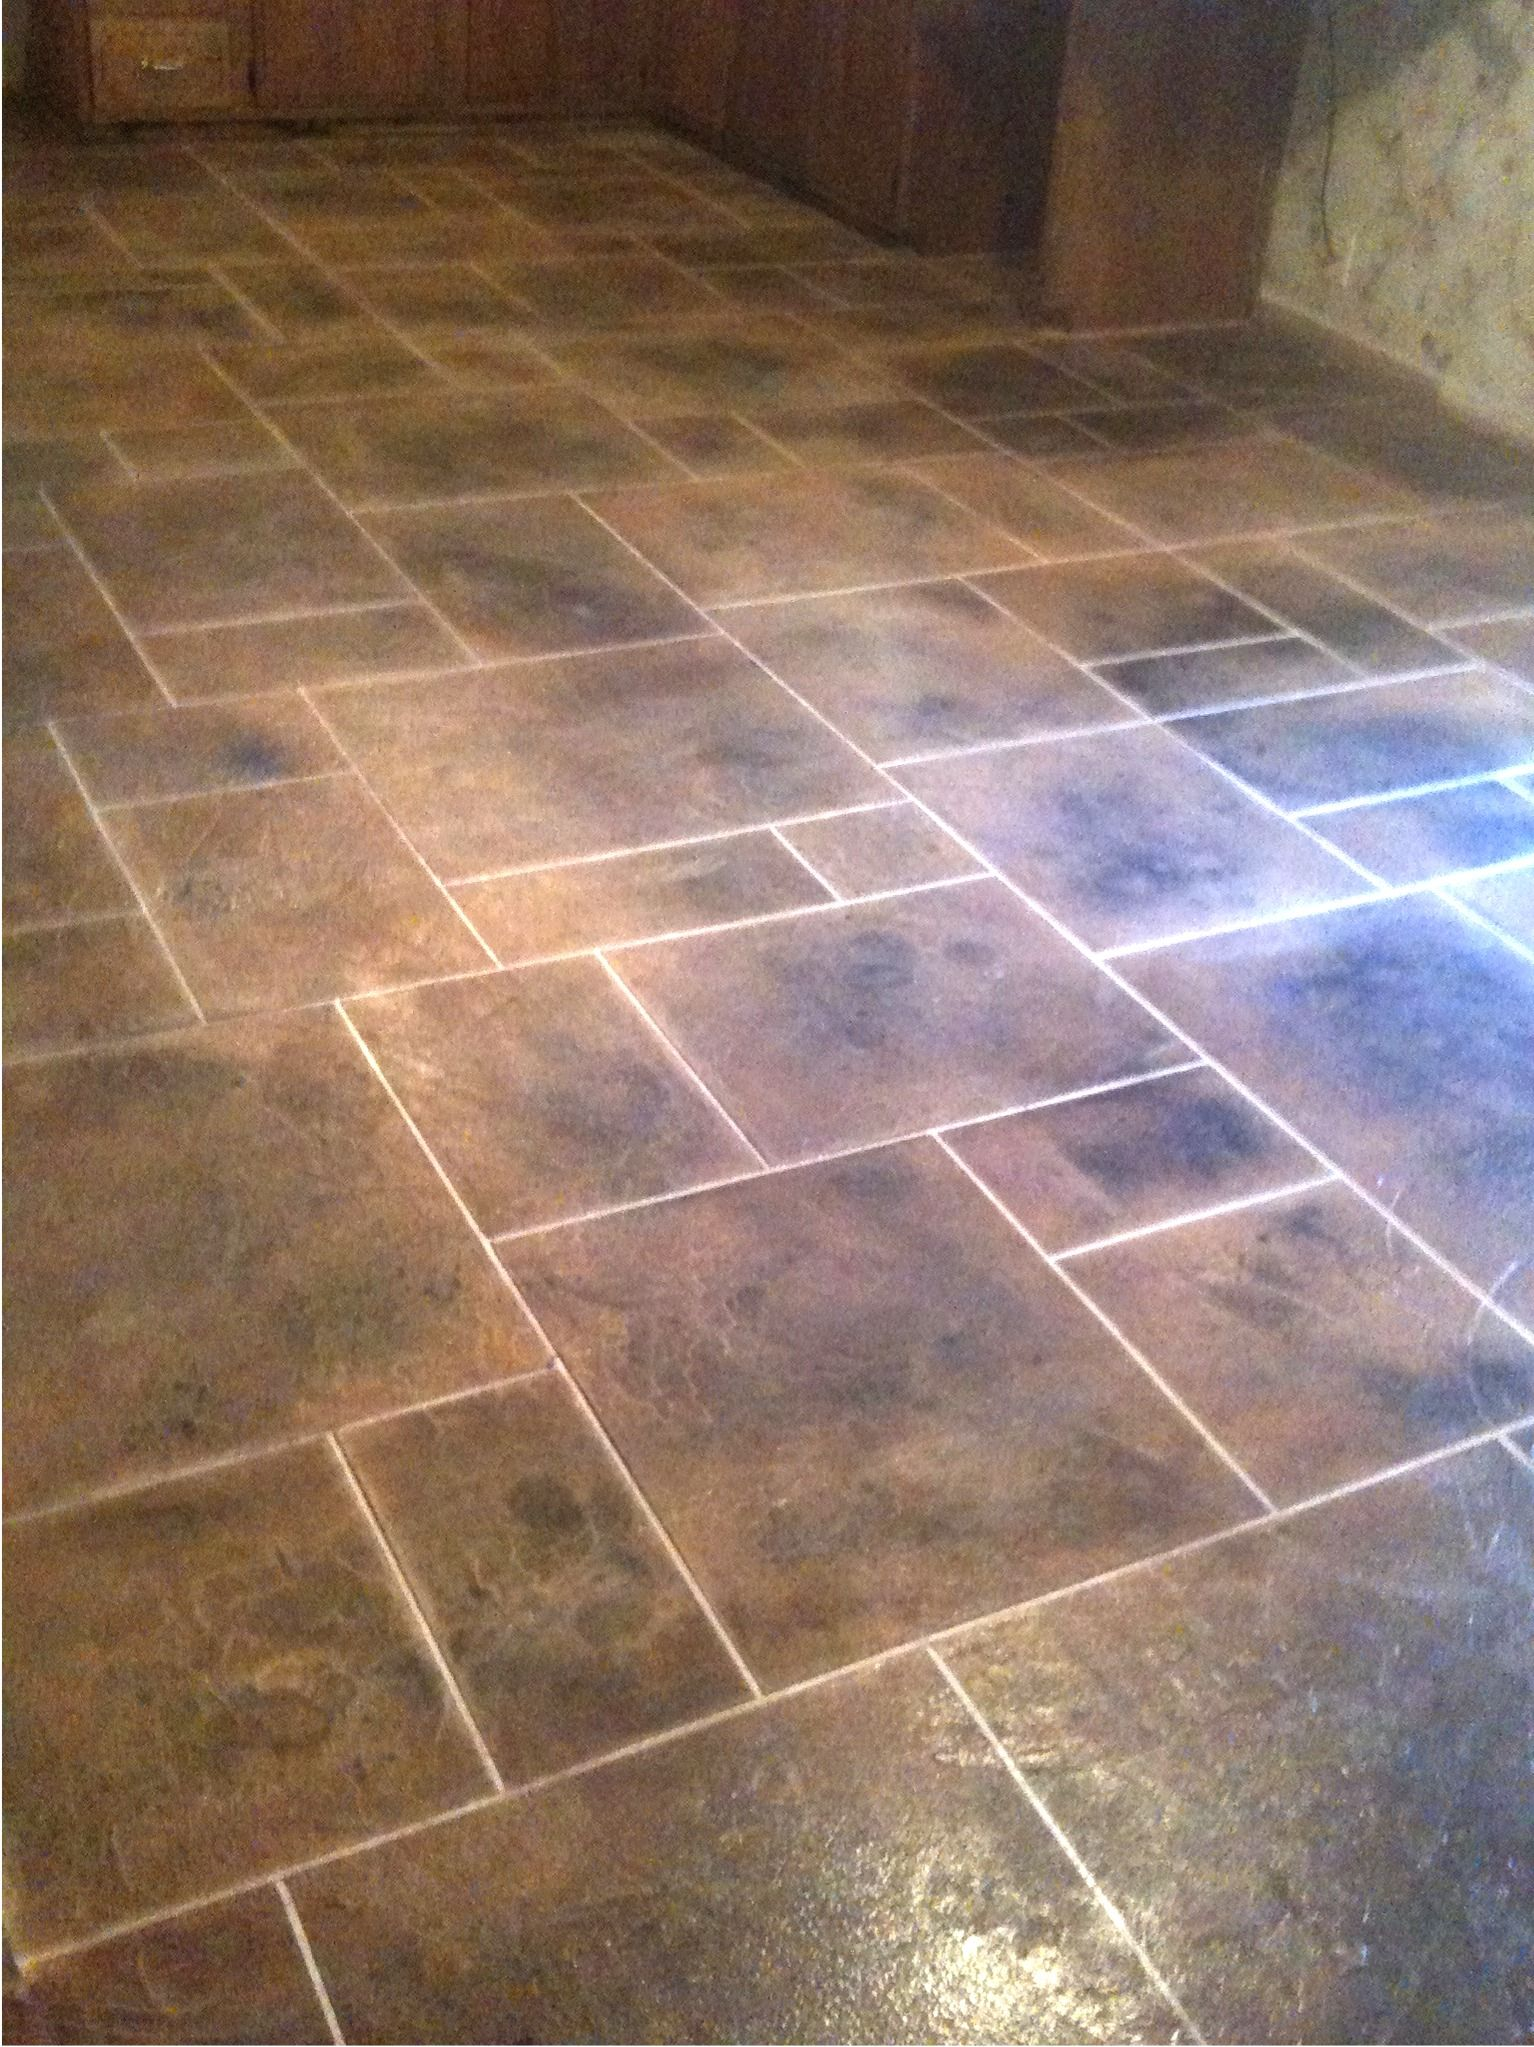 kitchen tile floor ideas Kitchen Floor Tile Patterns concrete overlay random pattern stone tile kitchen floor